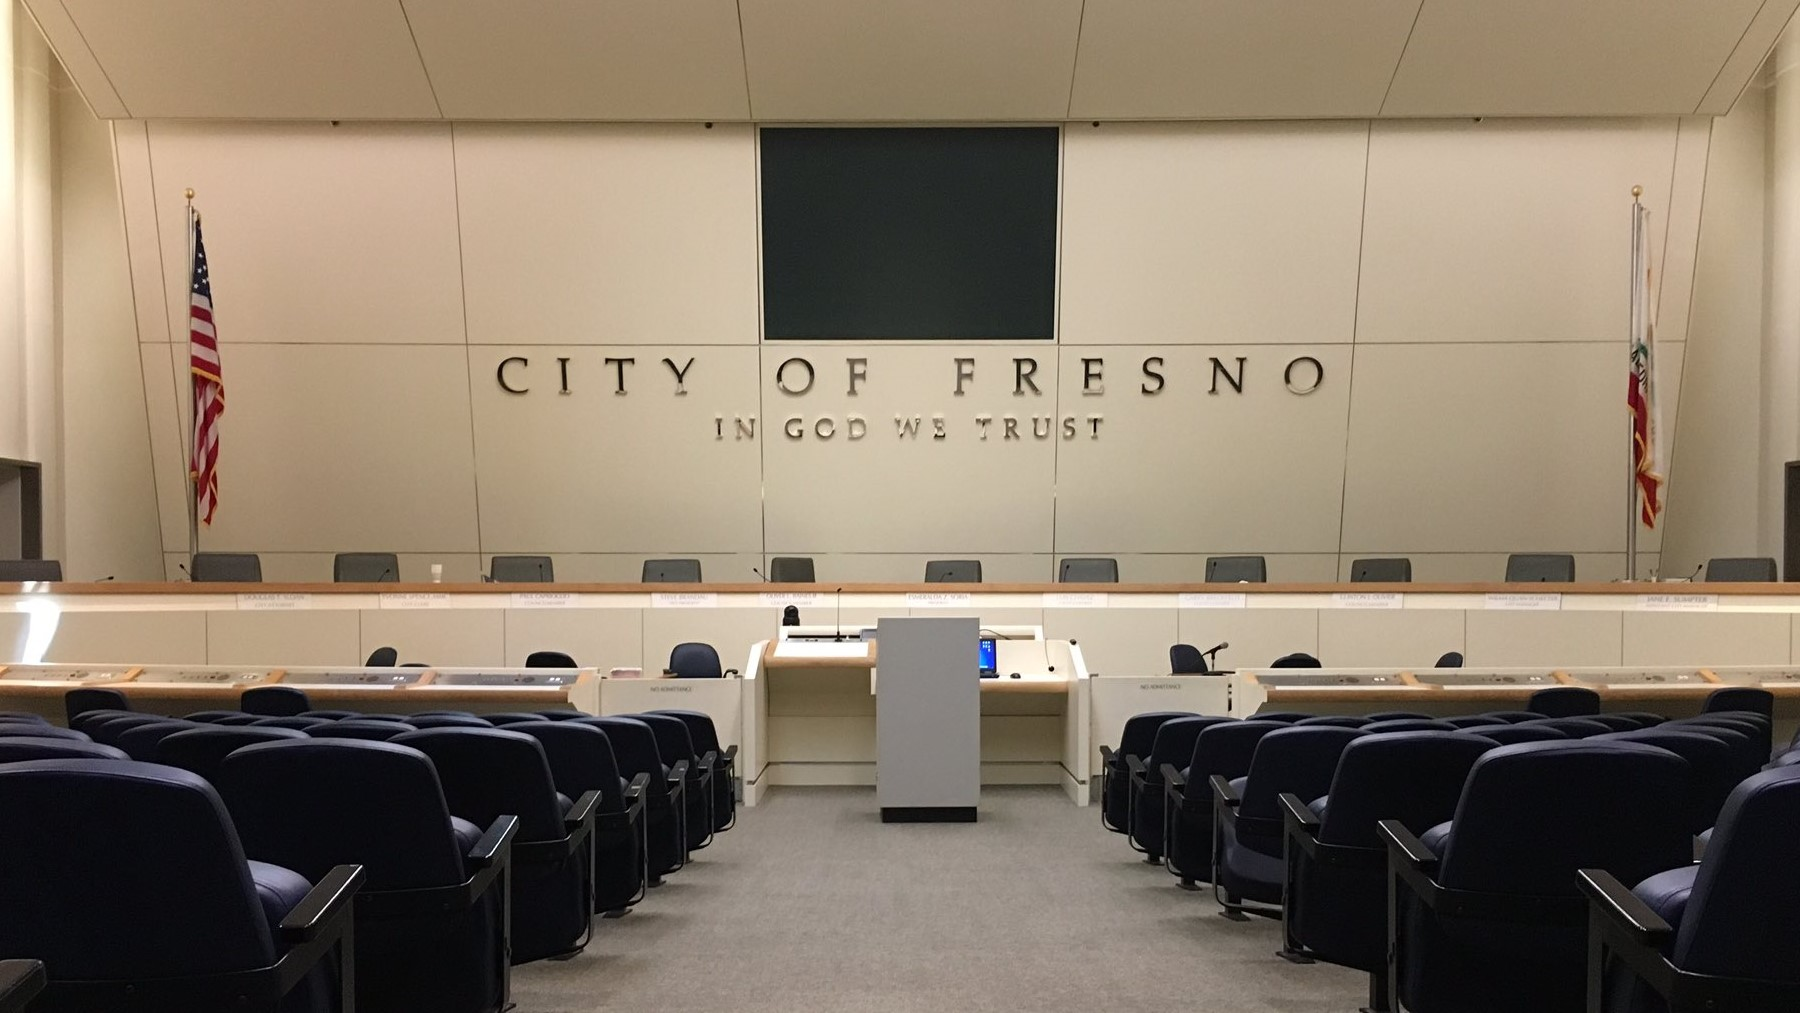 Fresno City Halloween 2020 Fresno's 'Save Our Small Businesses' emergency grant phase 3